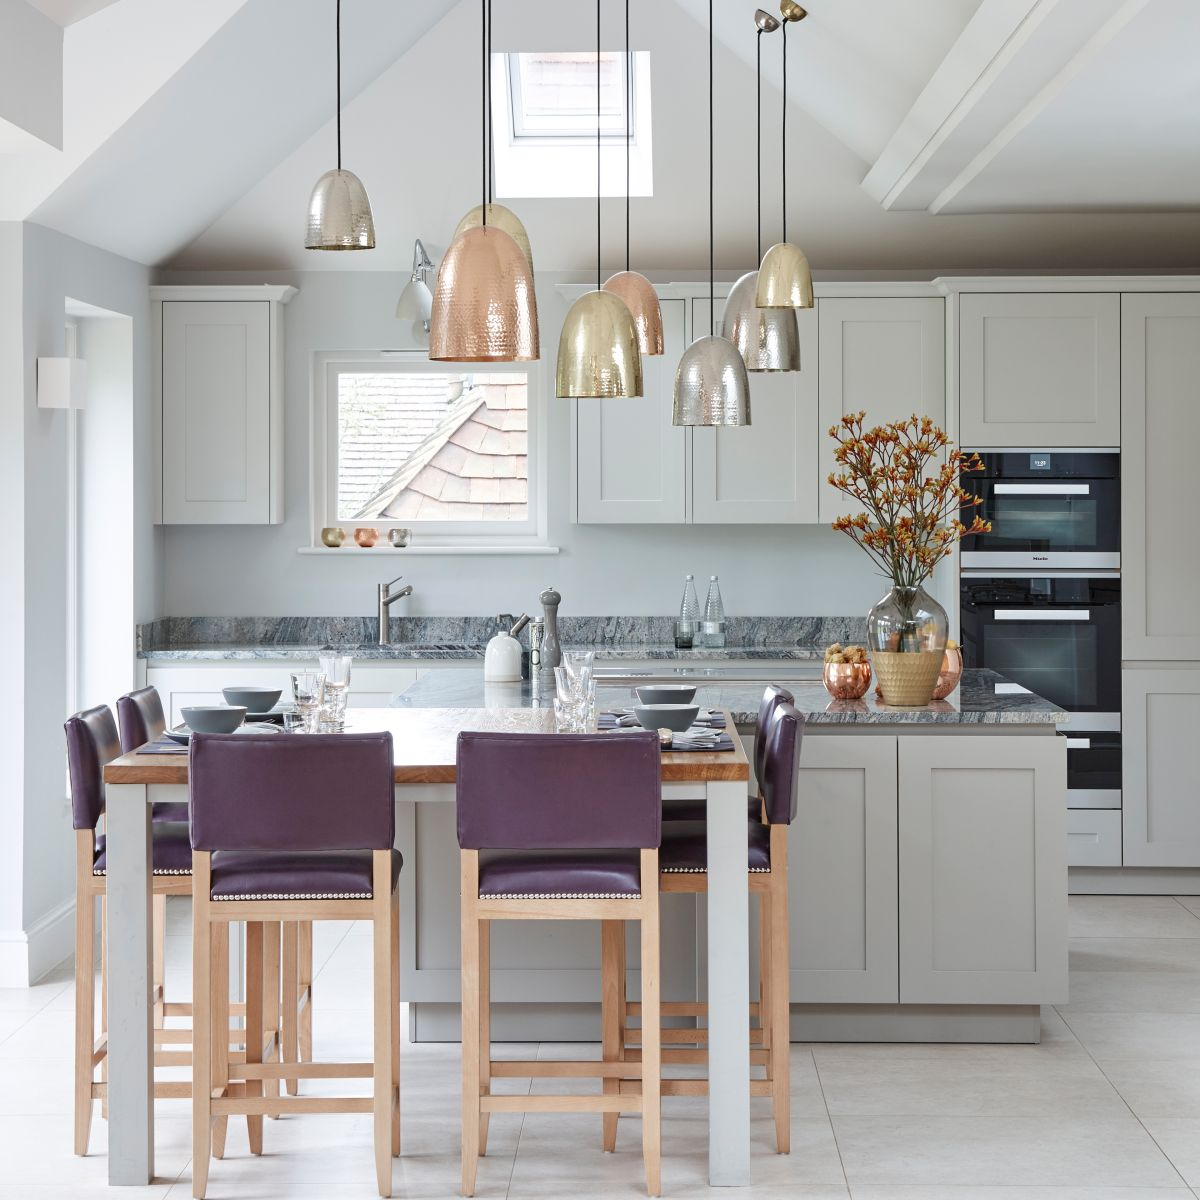 Small Kitchen Lighting Tips: How To Plan Kitchen Lighting